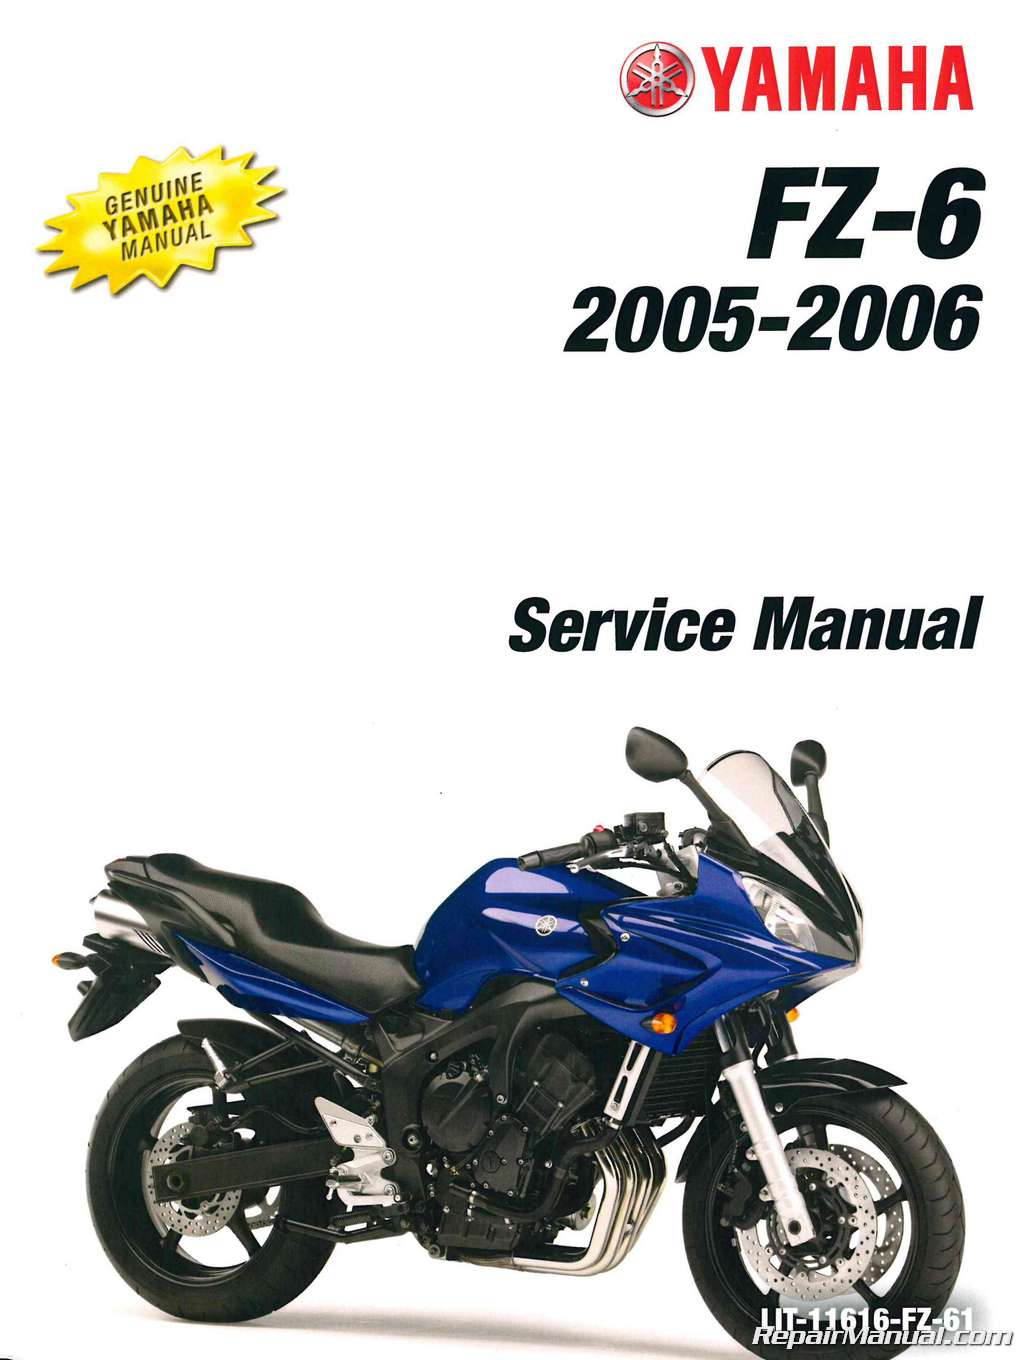 2014 2015 Honda Crf250r Service Manual also Yamaha Yfm350 Raptor Warrior Cyclepedia Printed Manual furthermore Official 2004 2006 Yamaha Fz6 Factory Service Manual Lit 11616 Fz 61 furthermore 2006 Dodge Stereo Wiring Diagram as well 419679259002925579. on yamaha golf cart repair manual